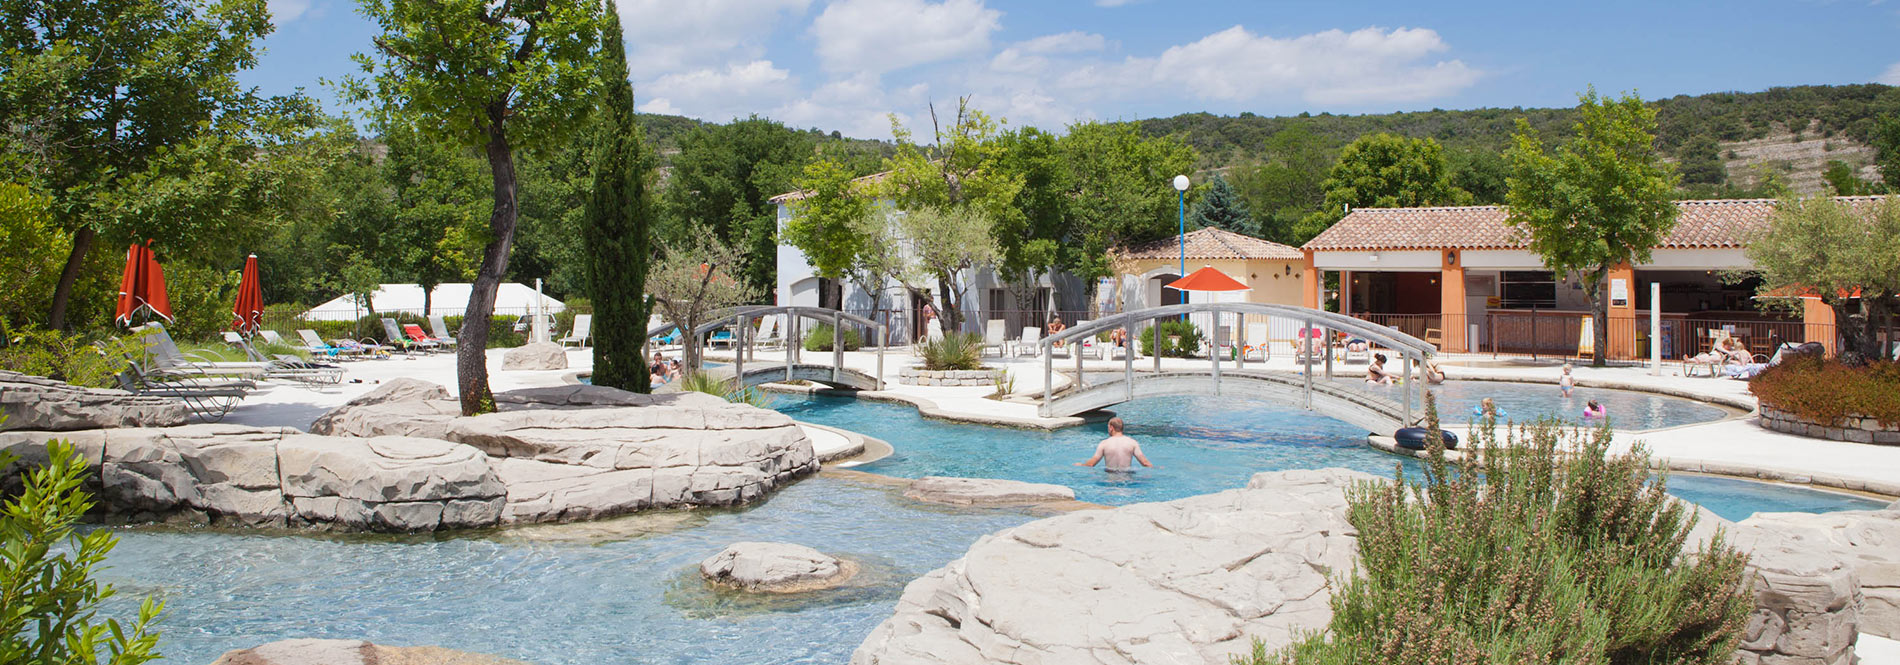 camping swimming pool discover the swimming pools of the